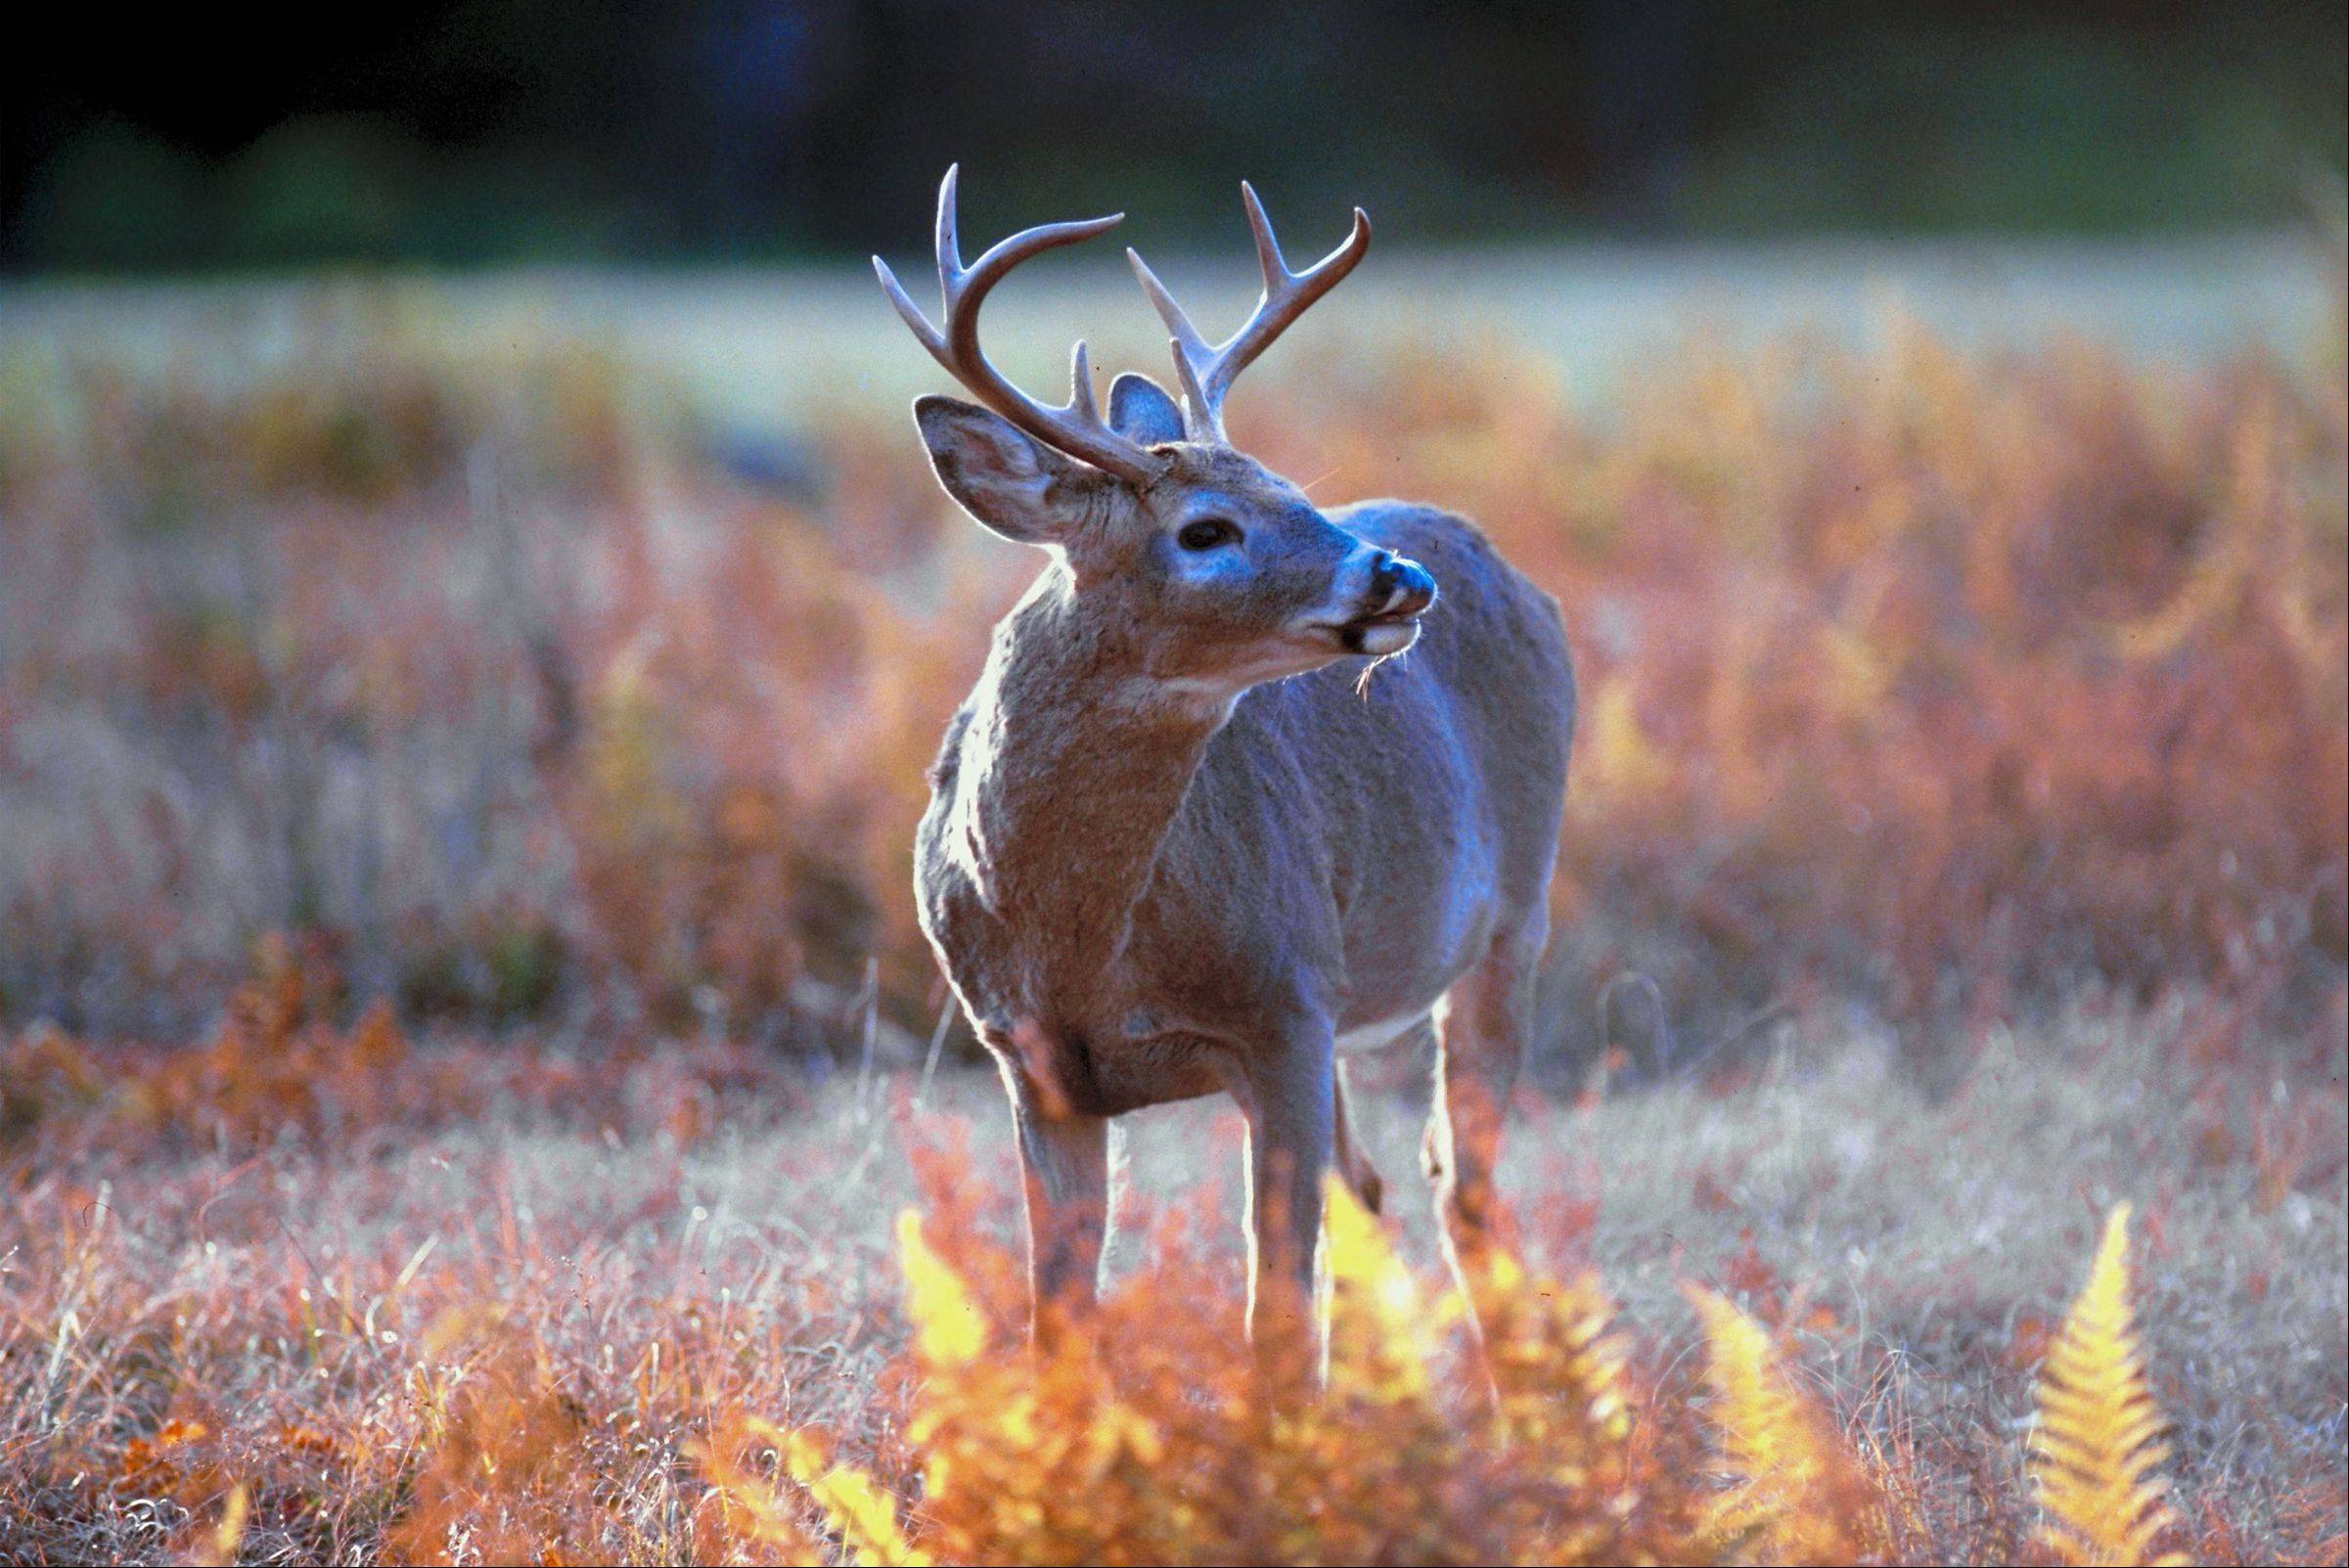 Preliminary figures show the number of deer hunted in Illinois is down this year. Citing preliminary Illinois Department of Natural Resources figures, Sauk Valley Media reports fewer deer were hunted during the seven-day firearm season which took place in November and December.